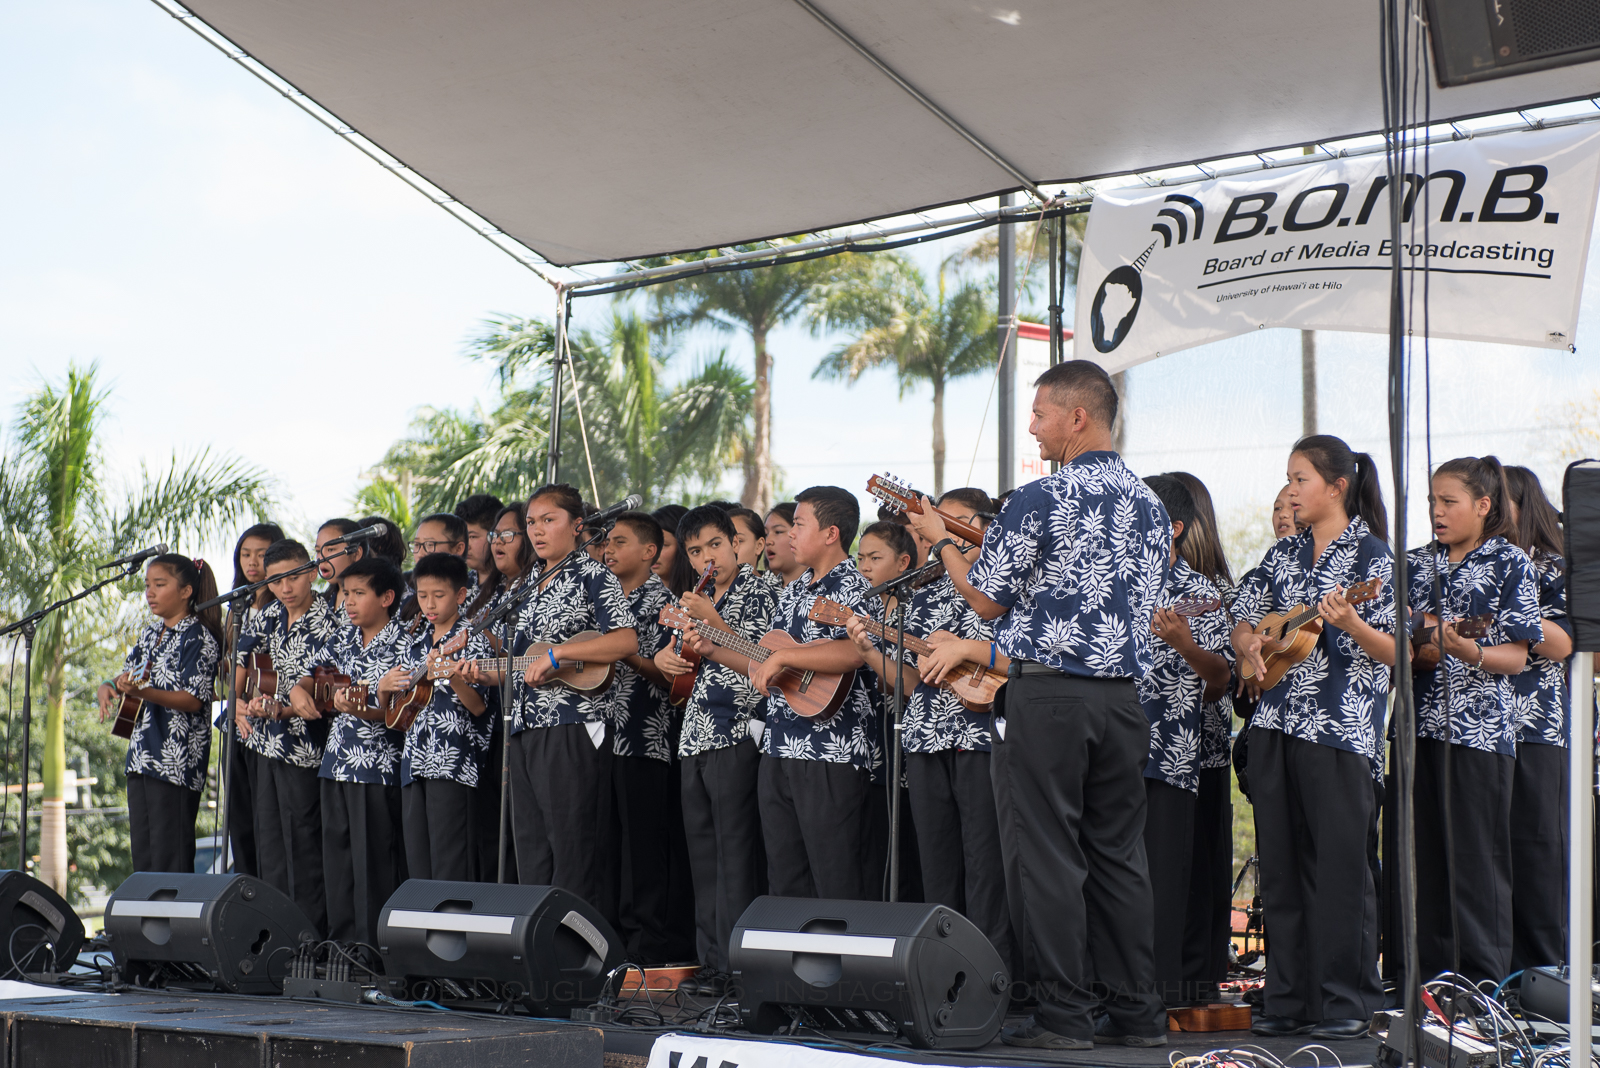 PHOTO ESSAY: UH Hilo's 21st Annual Hoʻolauleʻa